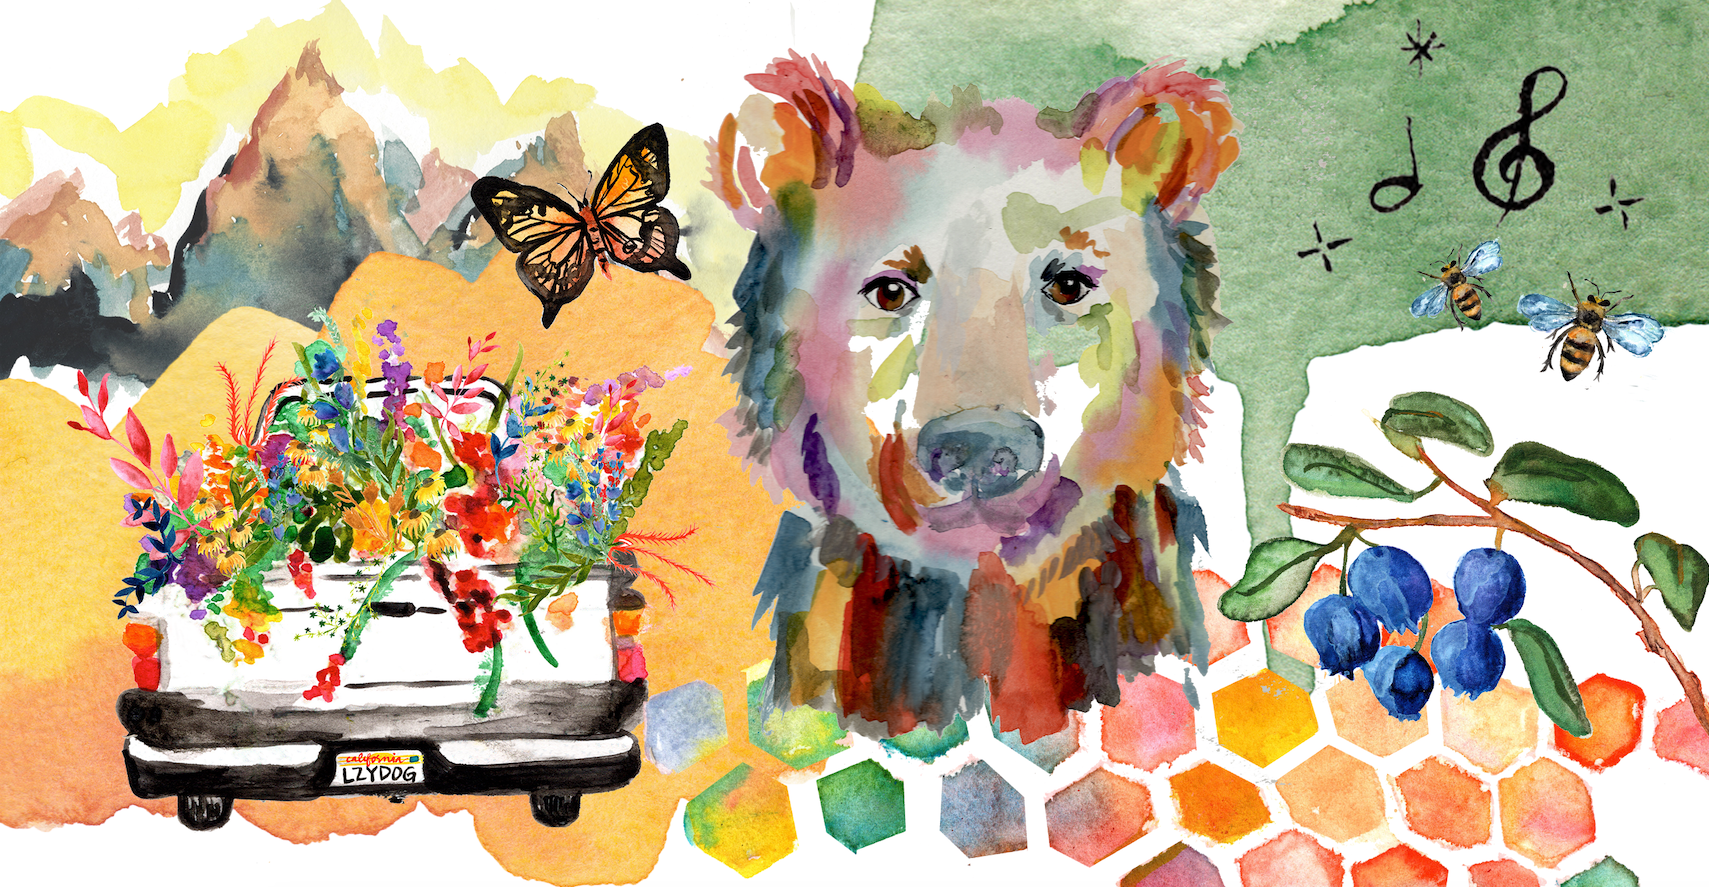 Water color image of bear, car and plants